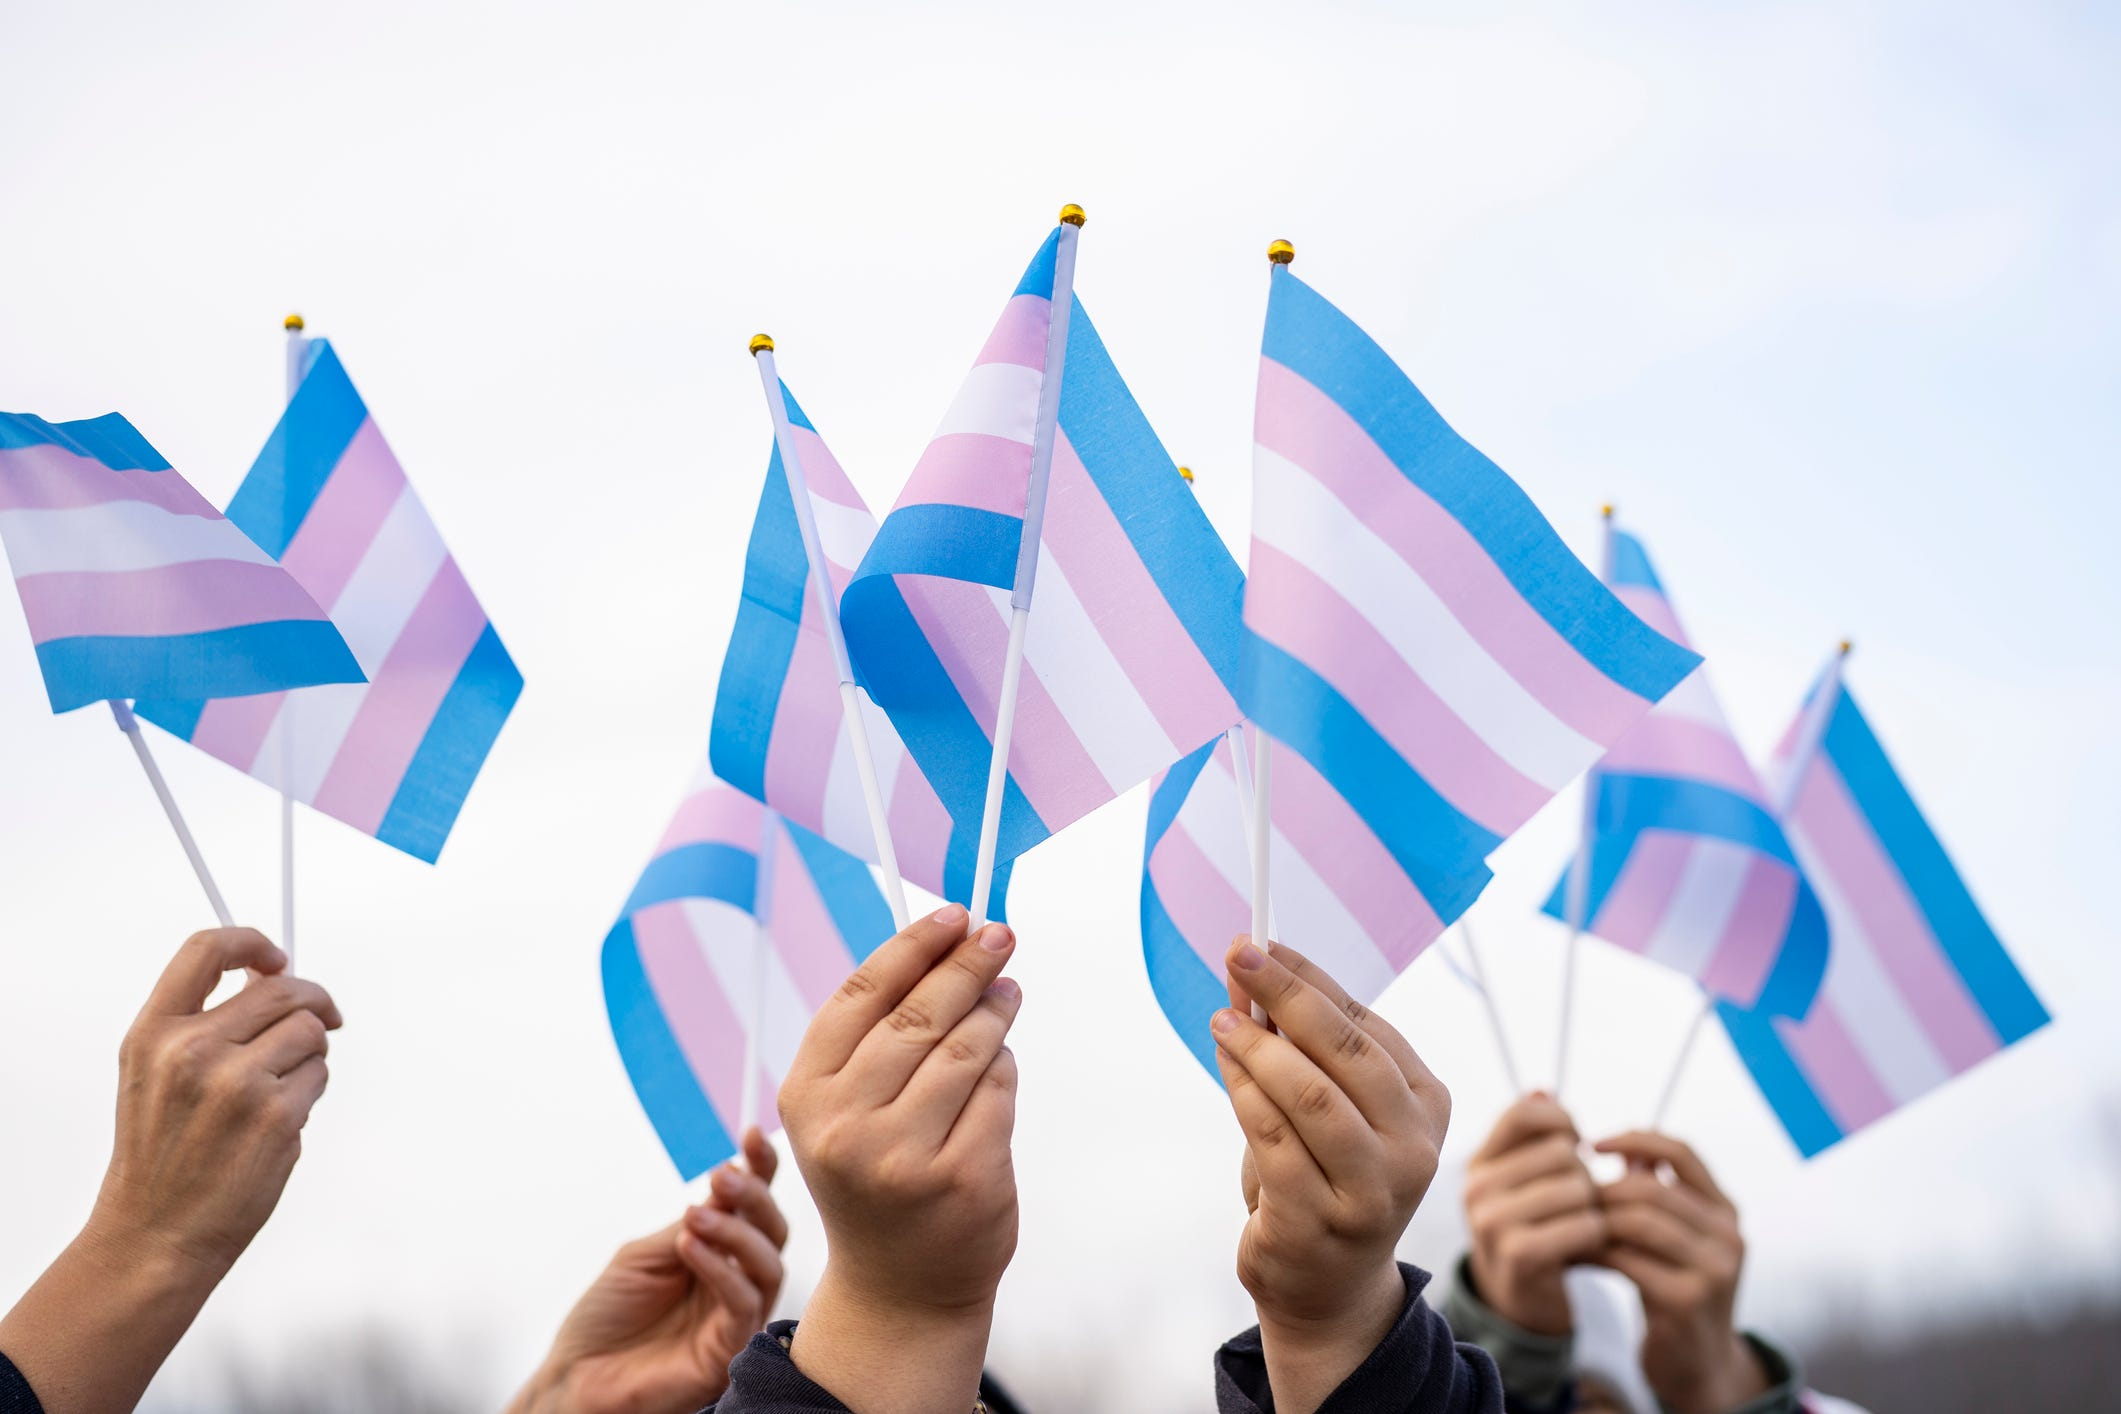 In the face of persecution, trans people – and the LGBTQ community at large – persevere, in order to find the joy buried in the trauma. Experts say the two are inextricably linked.